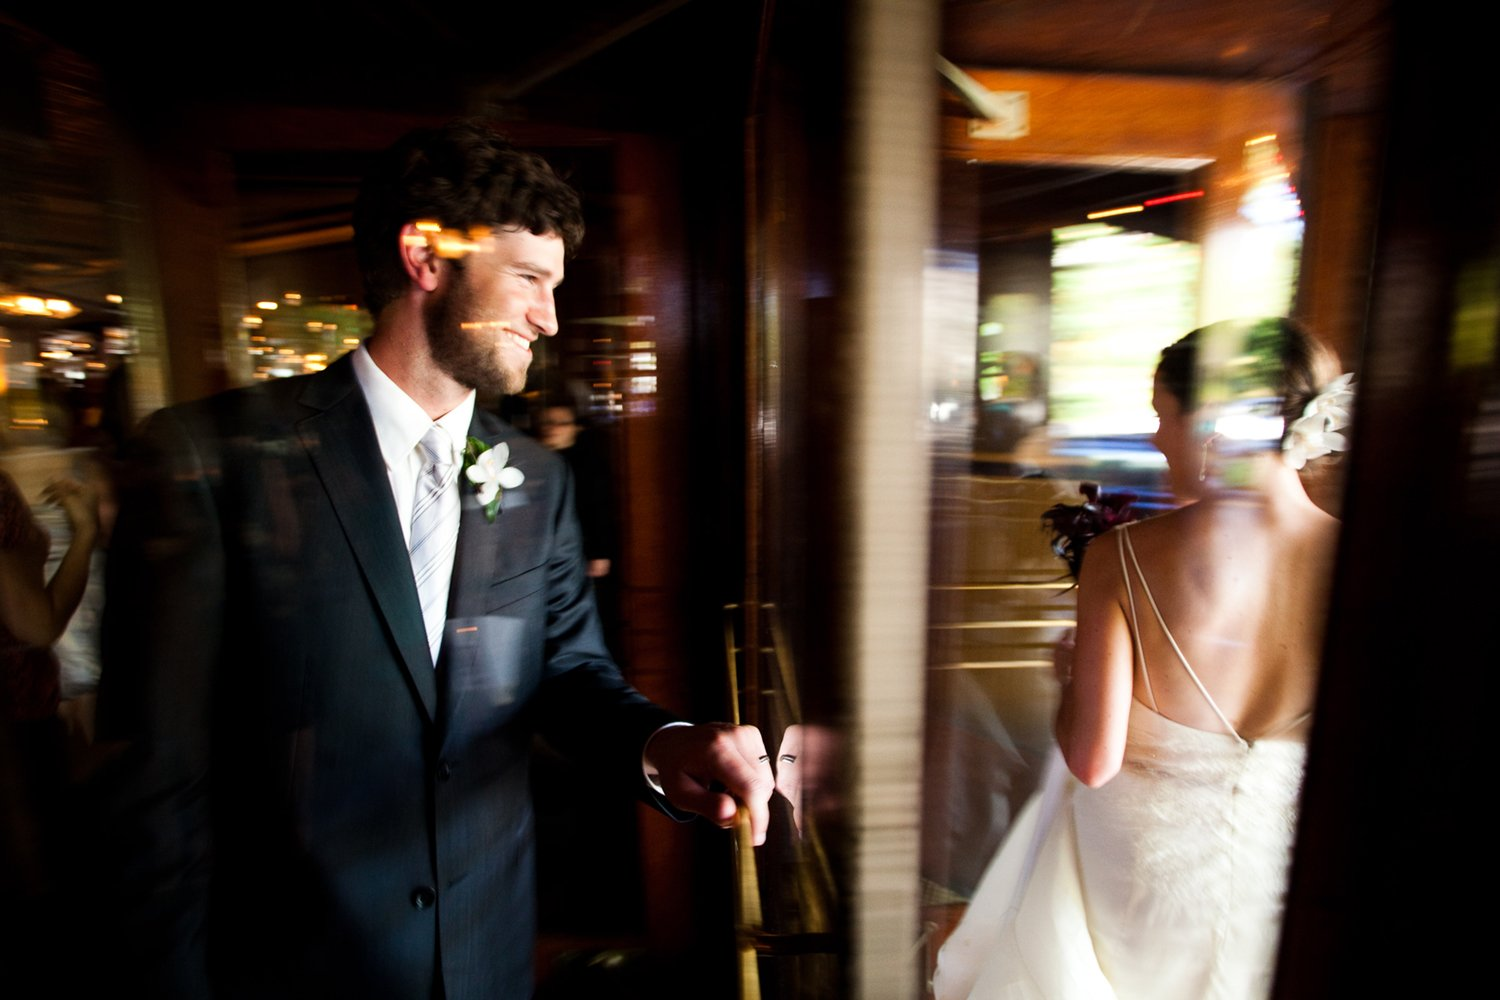 bride_and_groom_window_reflection